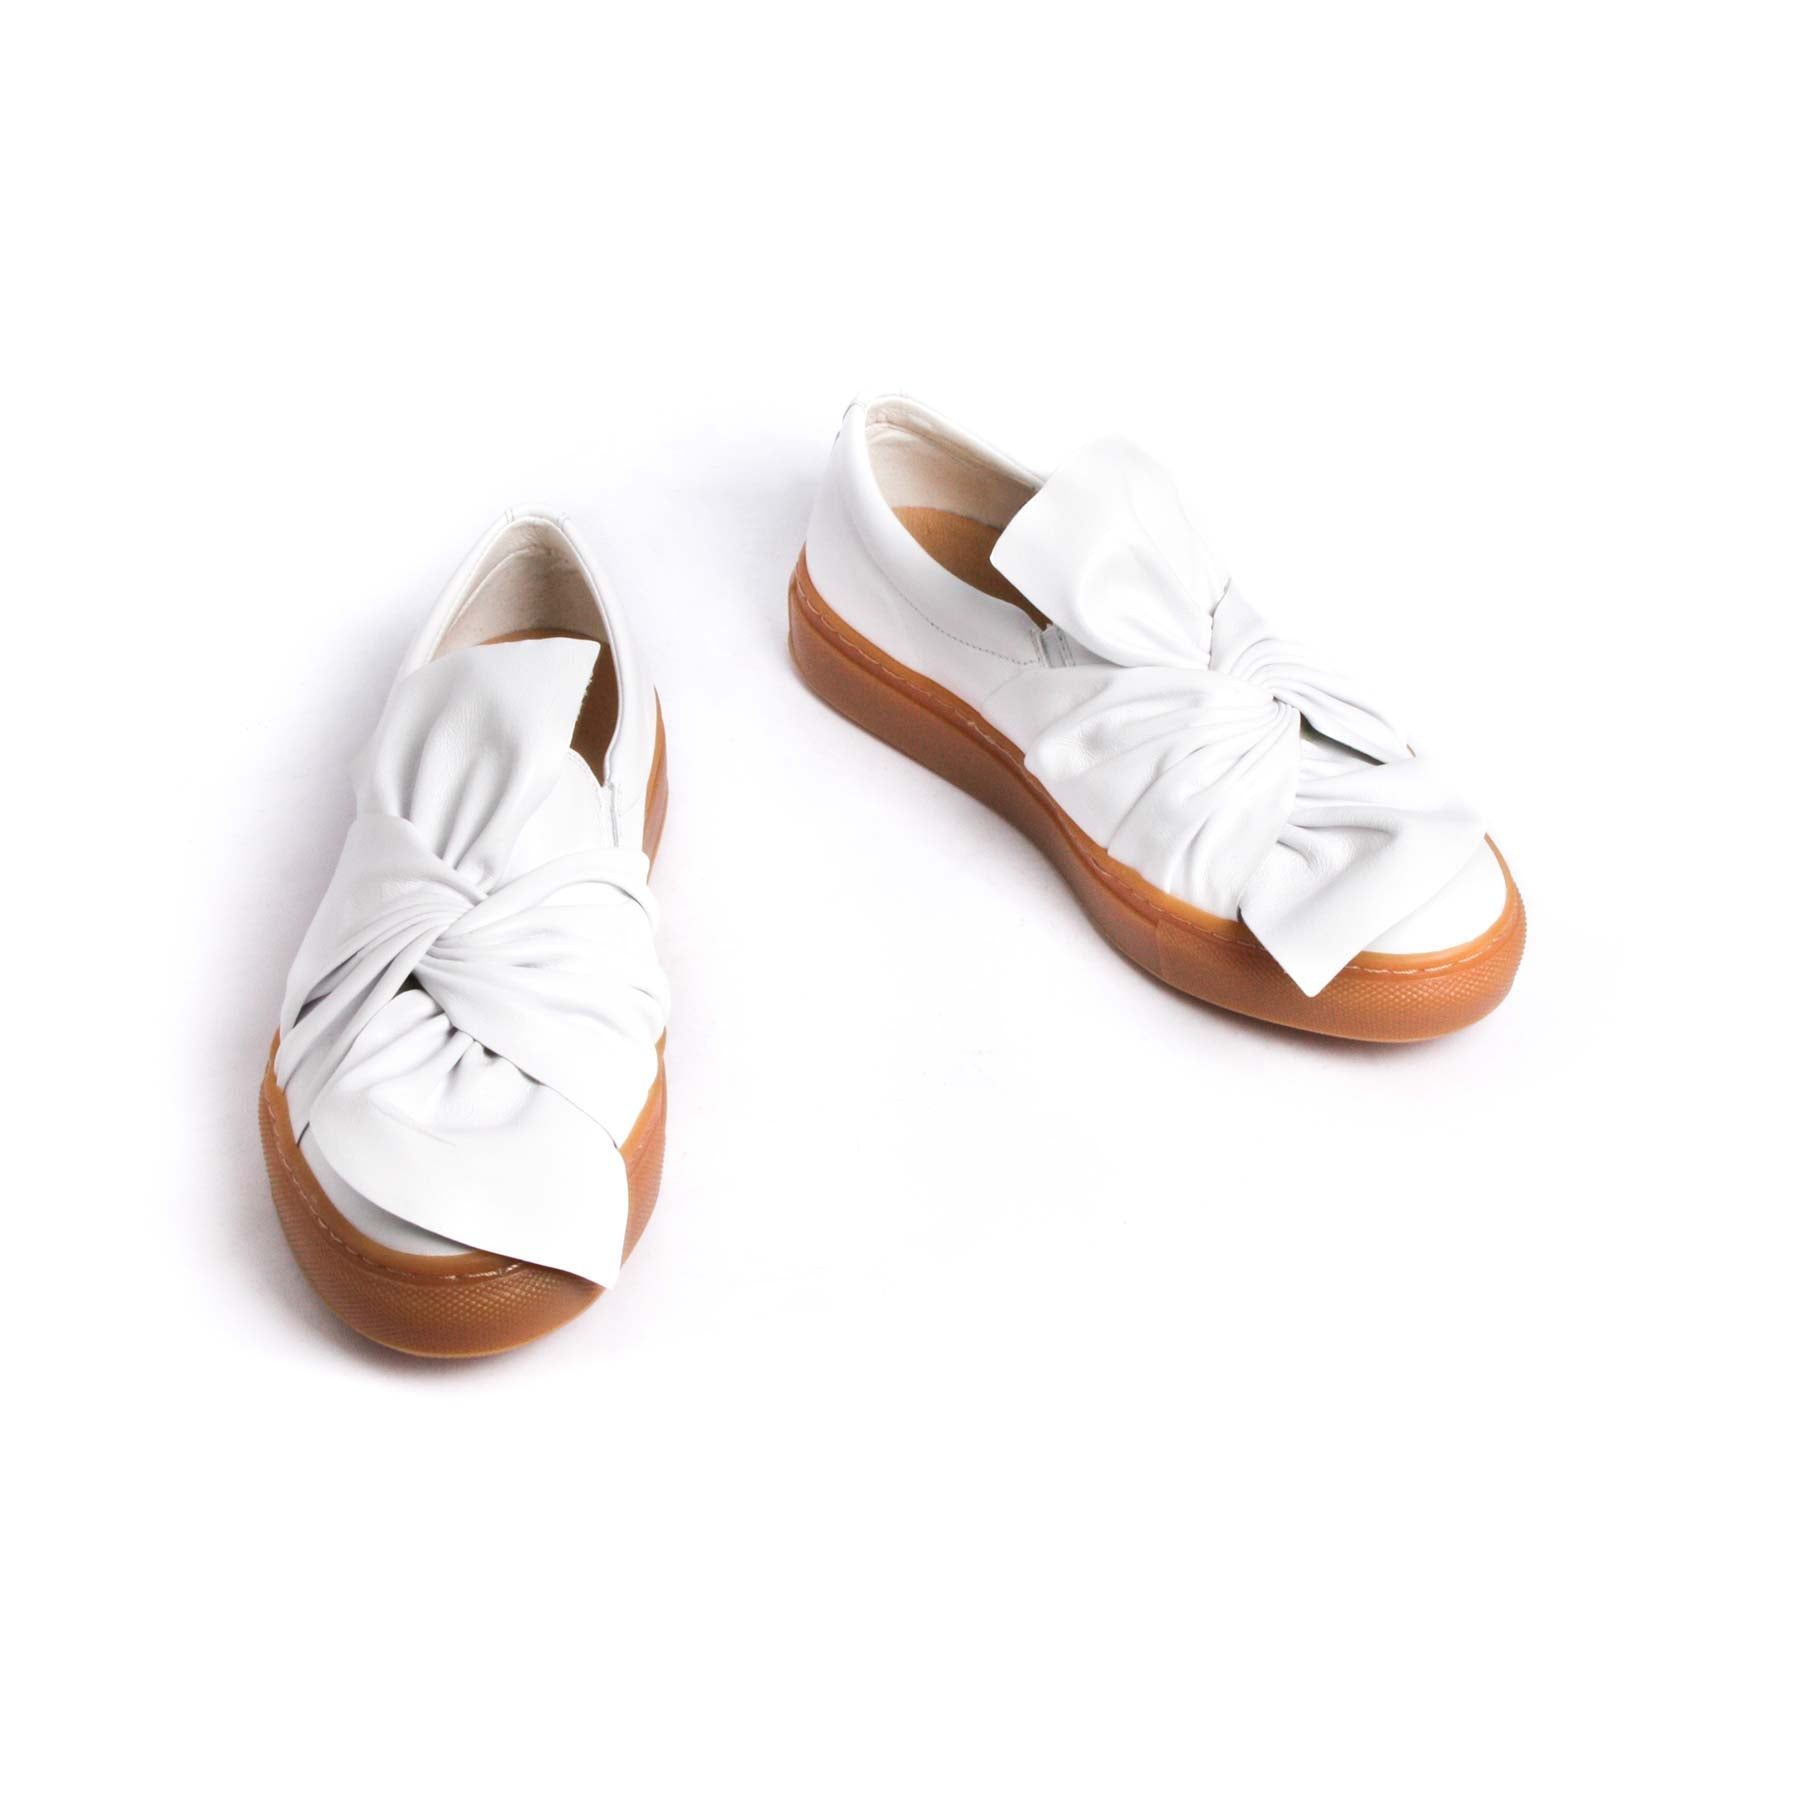 Luby White Leather- SOLD OUT